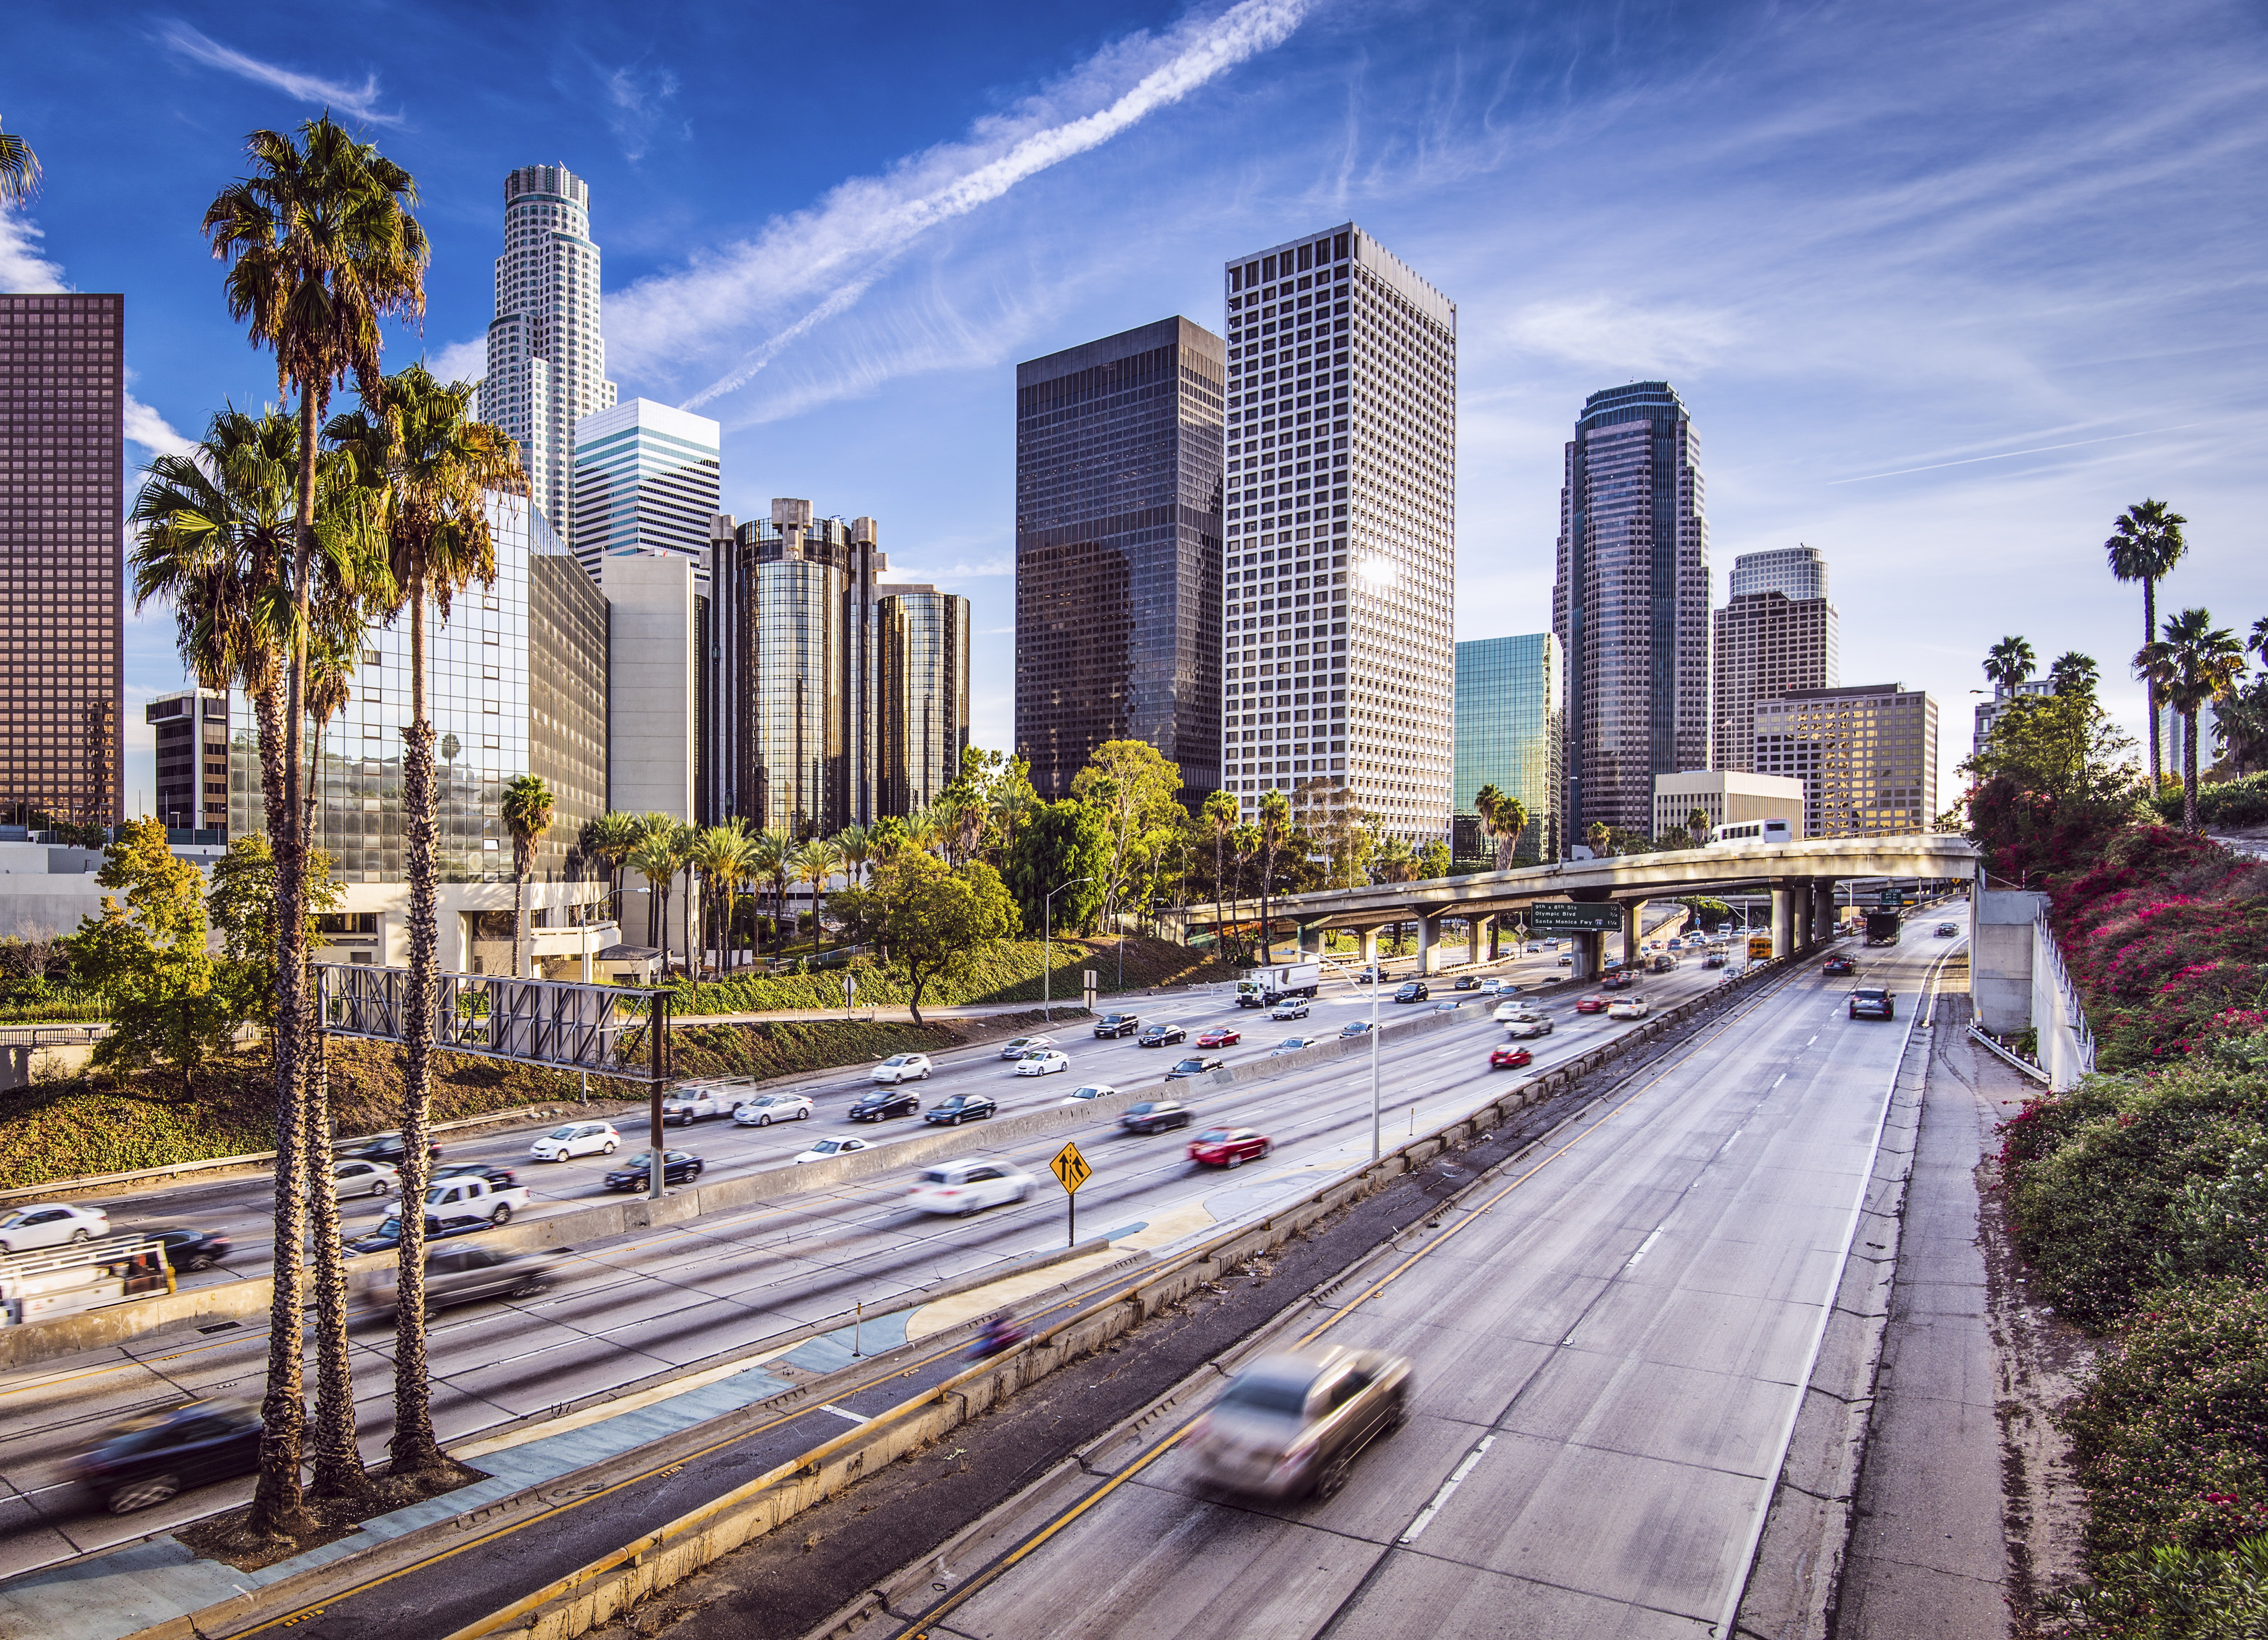 42 Los Angeles Hd Wallpapers Background Images Wallpaper